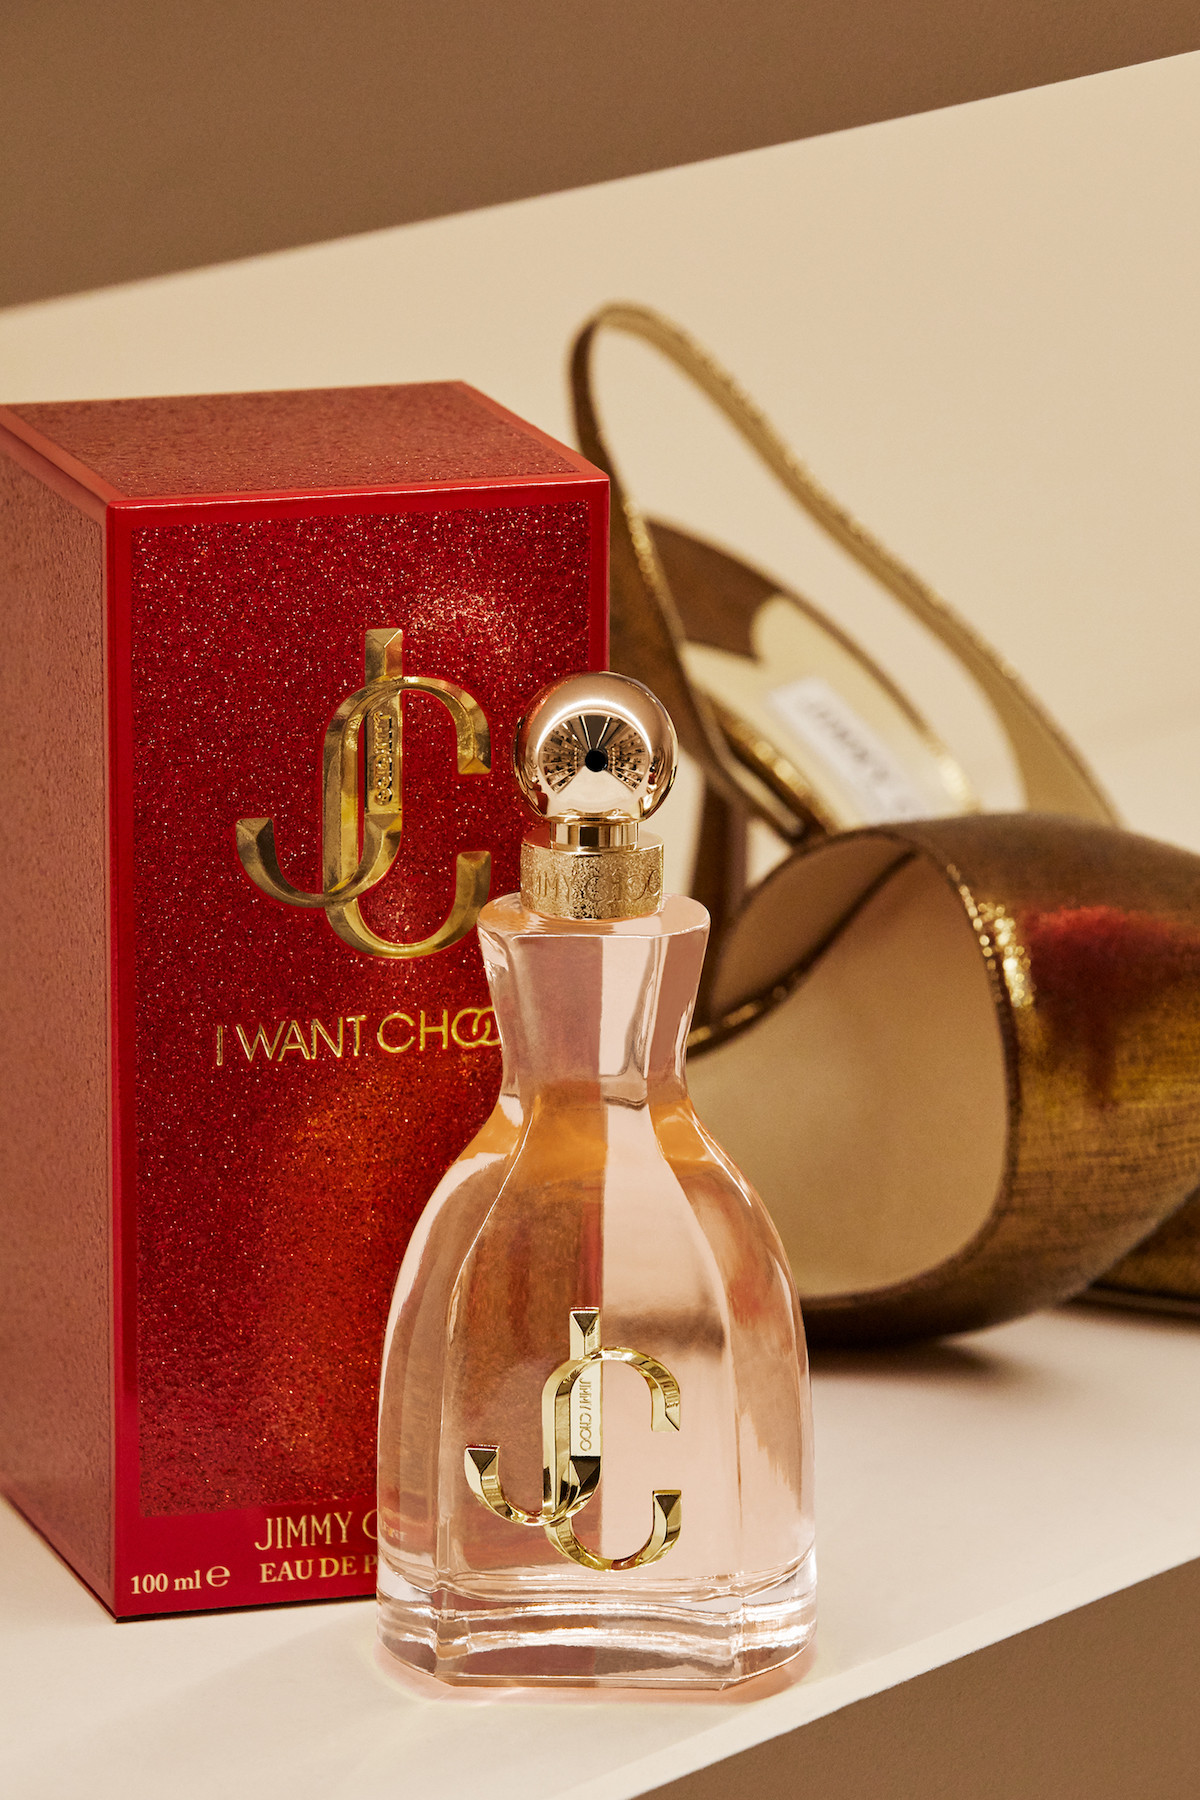 JIMMY CHOO - I WANT CHOO 熾愛同名淡香精 40ml,NT.2250